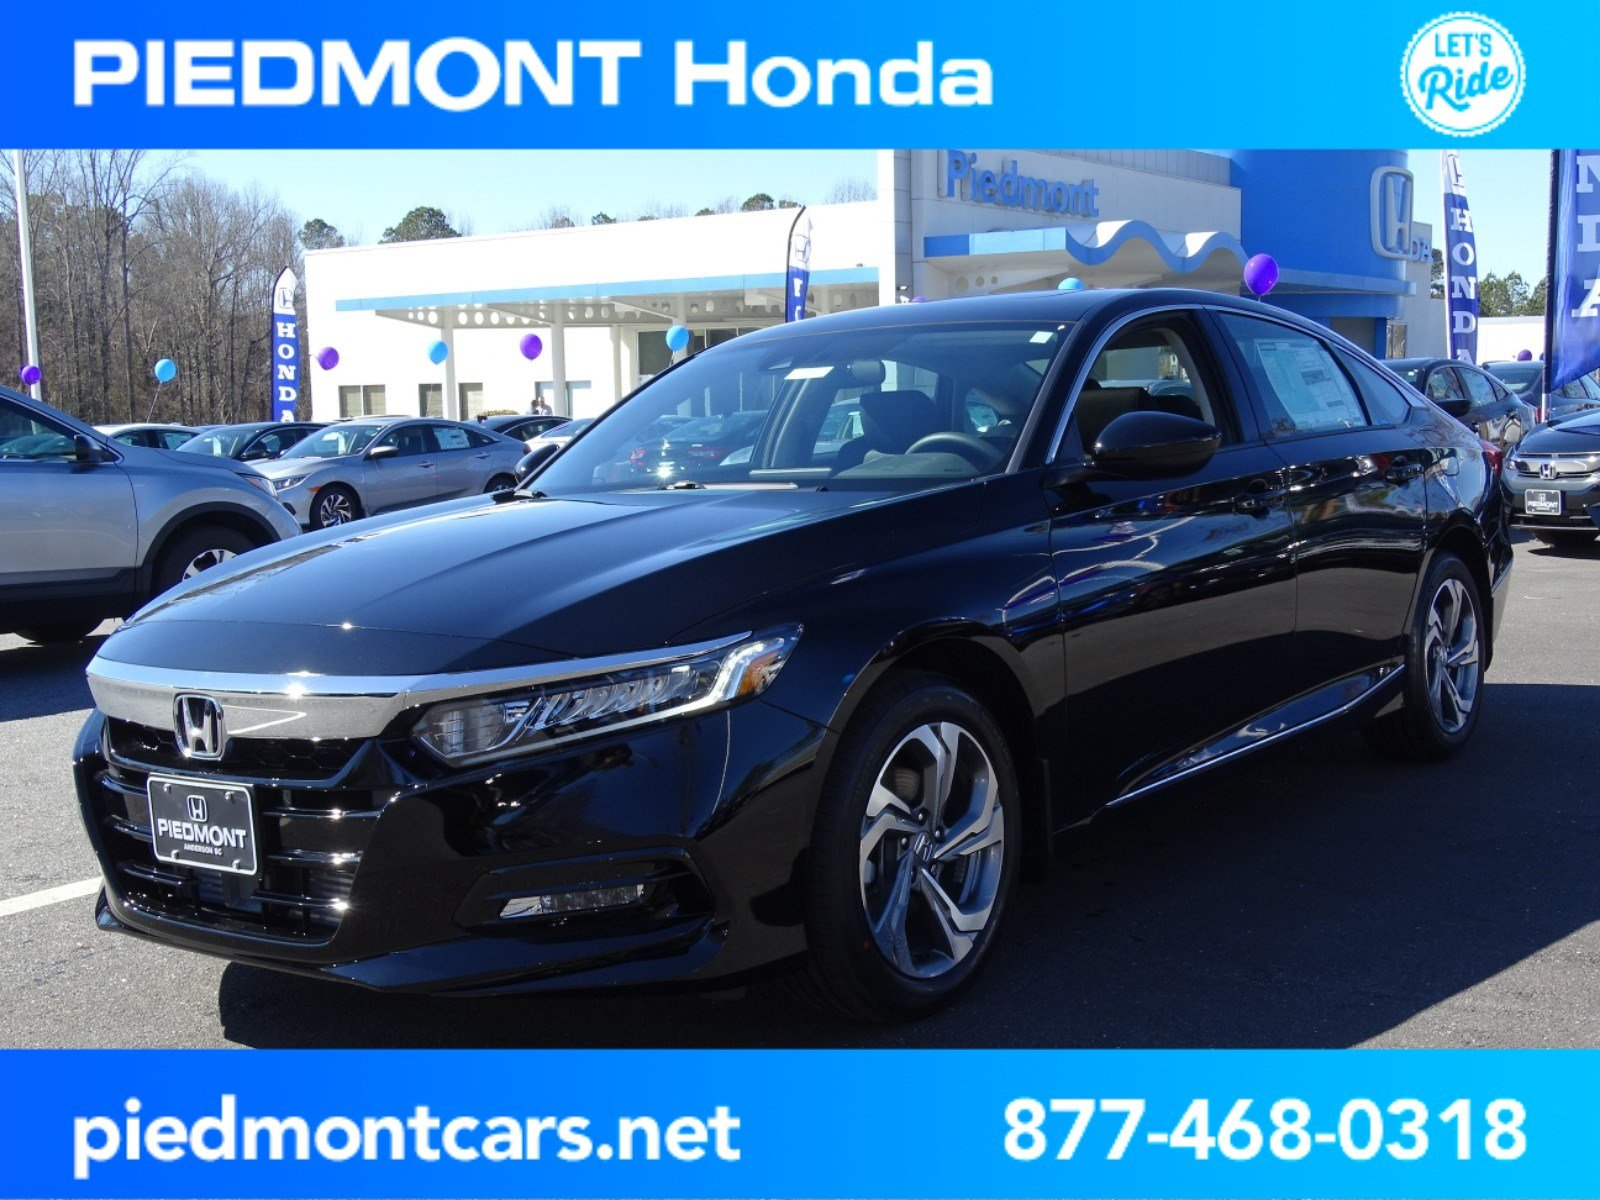 New 2018 Honda Accord Sedan EX 1 5T CVT 4dr Car in Anderson H